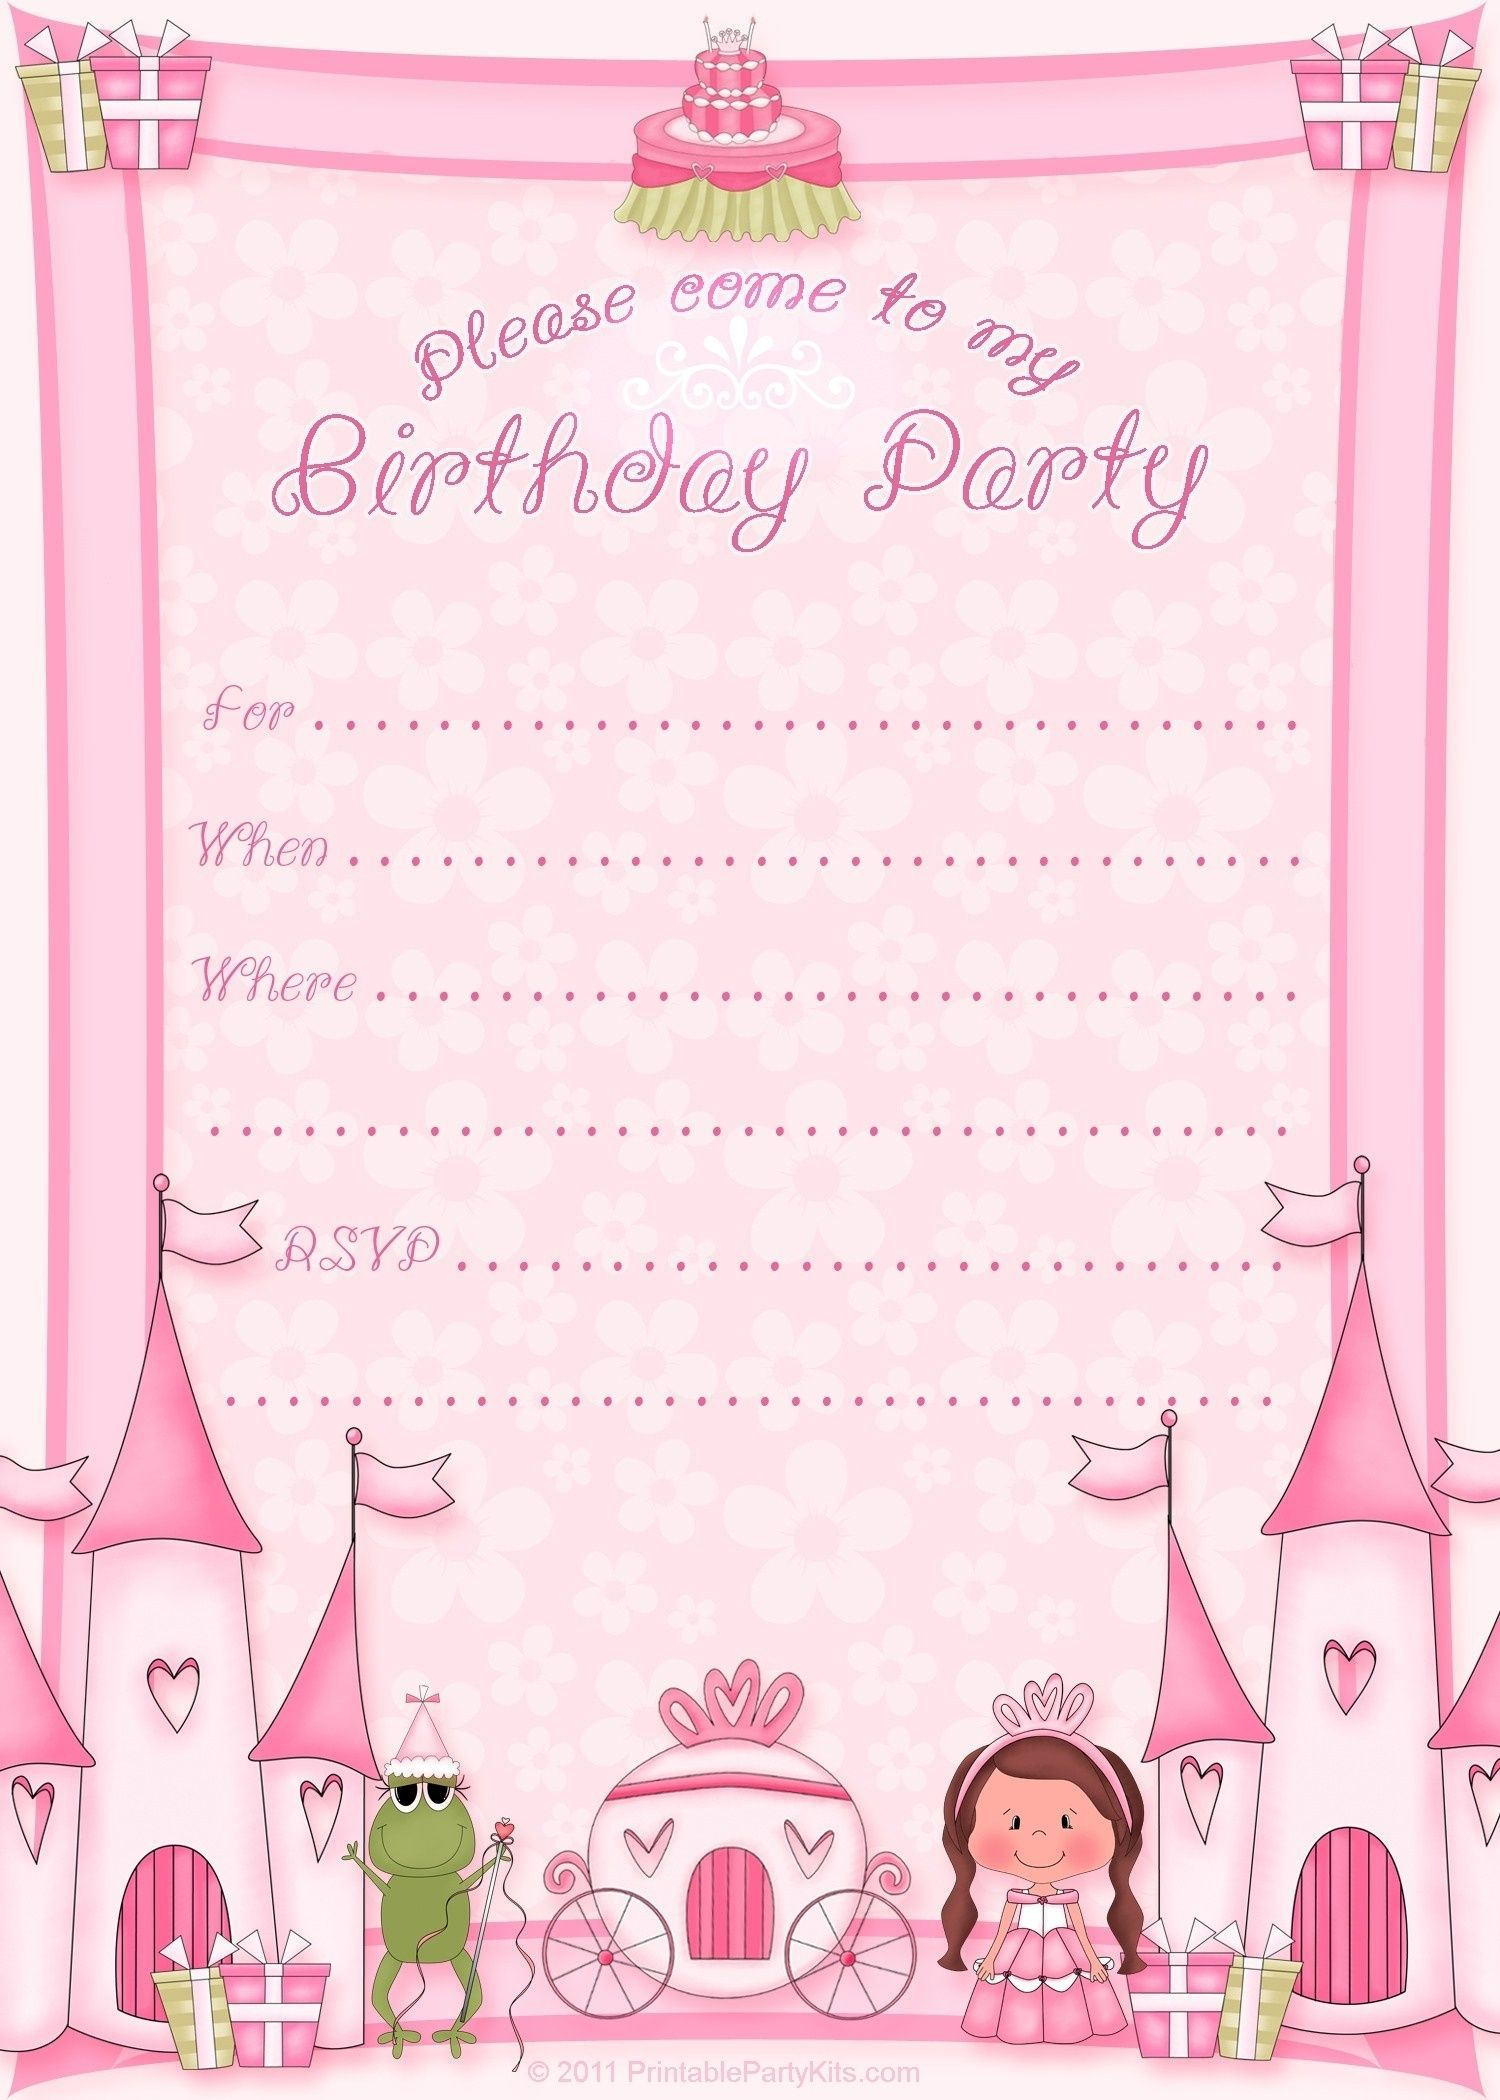 003 Wonderful Birthday Invitation Template Free Download Inspiration  Editable Video Twin First Downloadable 18th PrintableFull